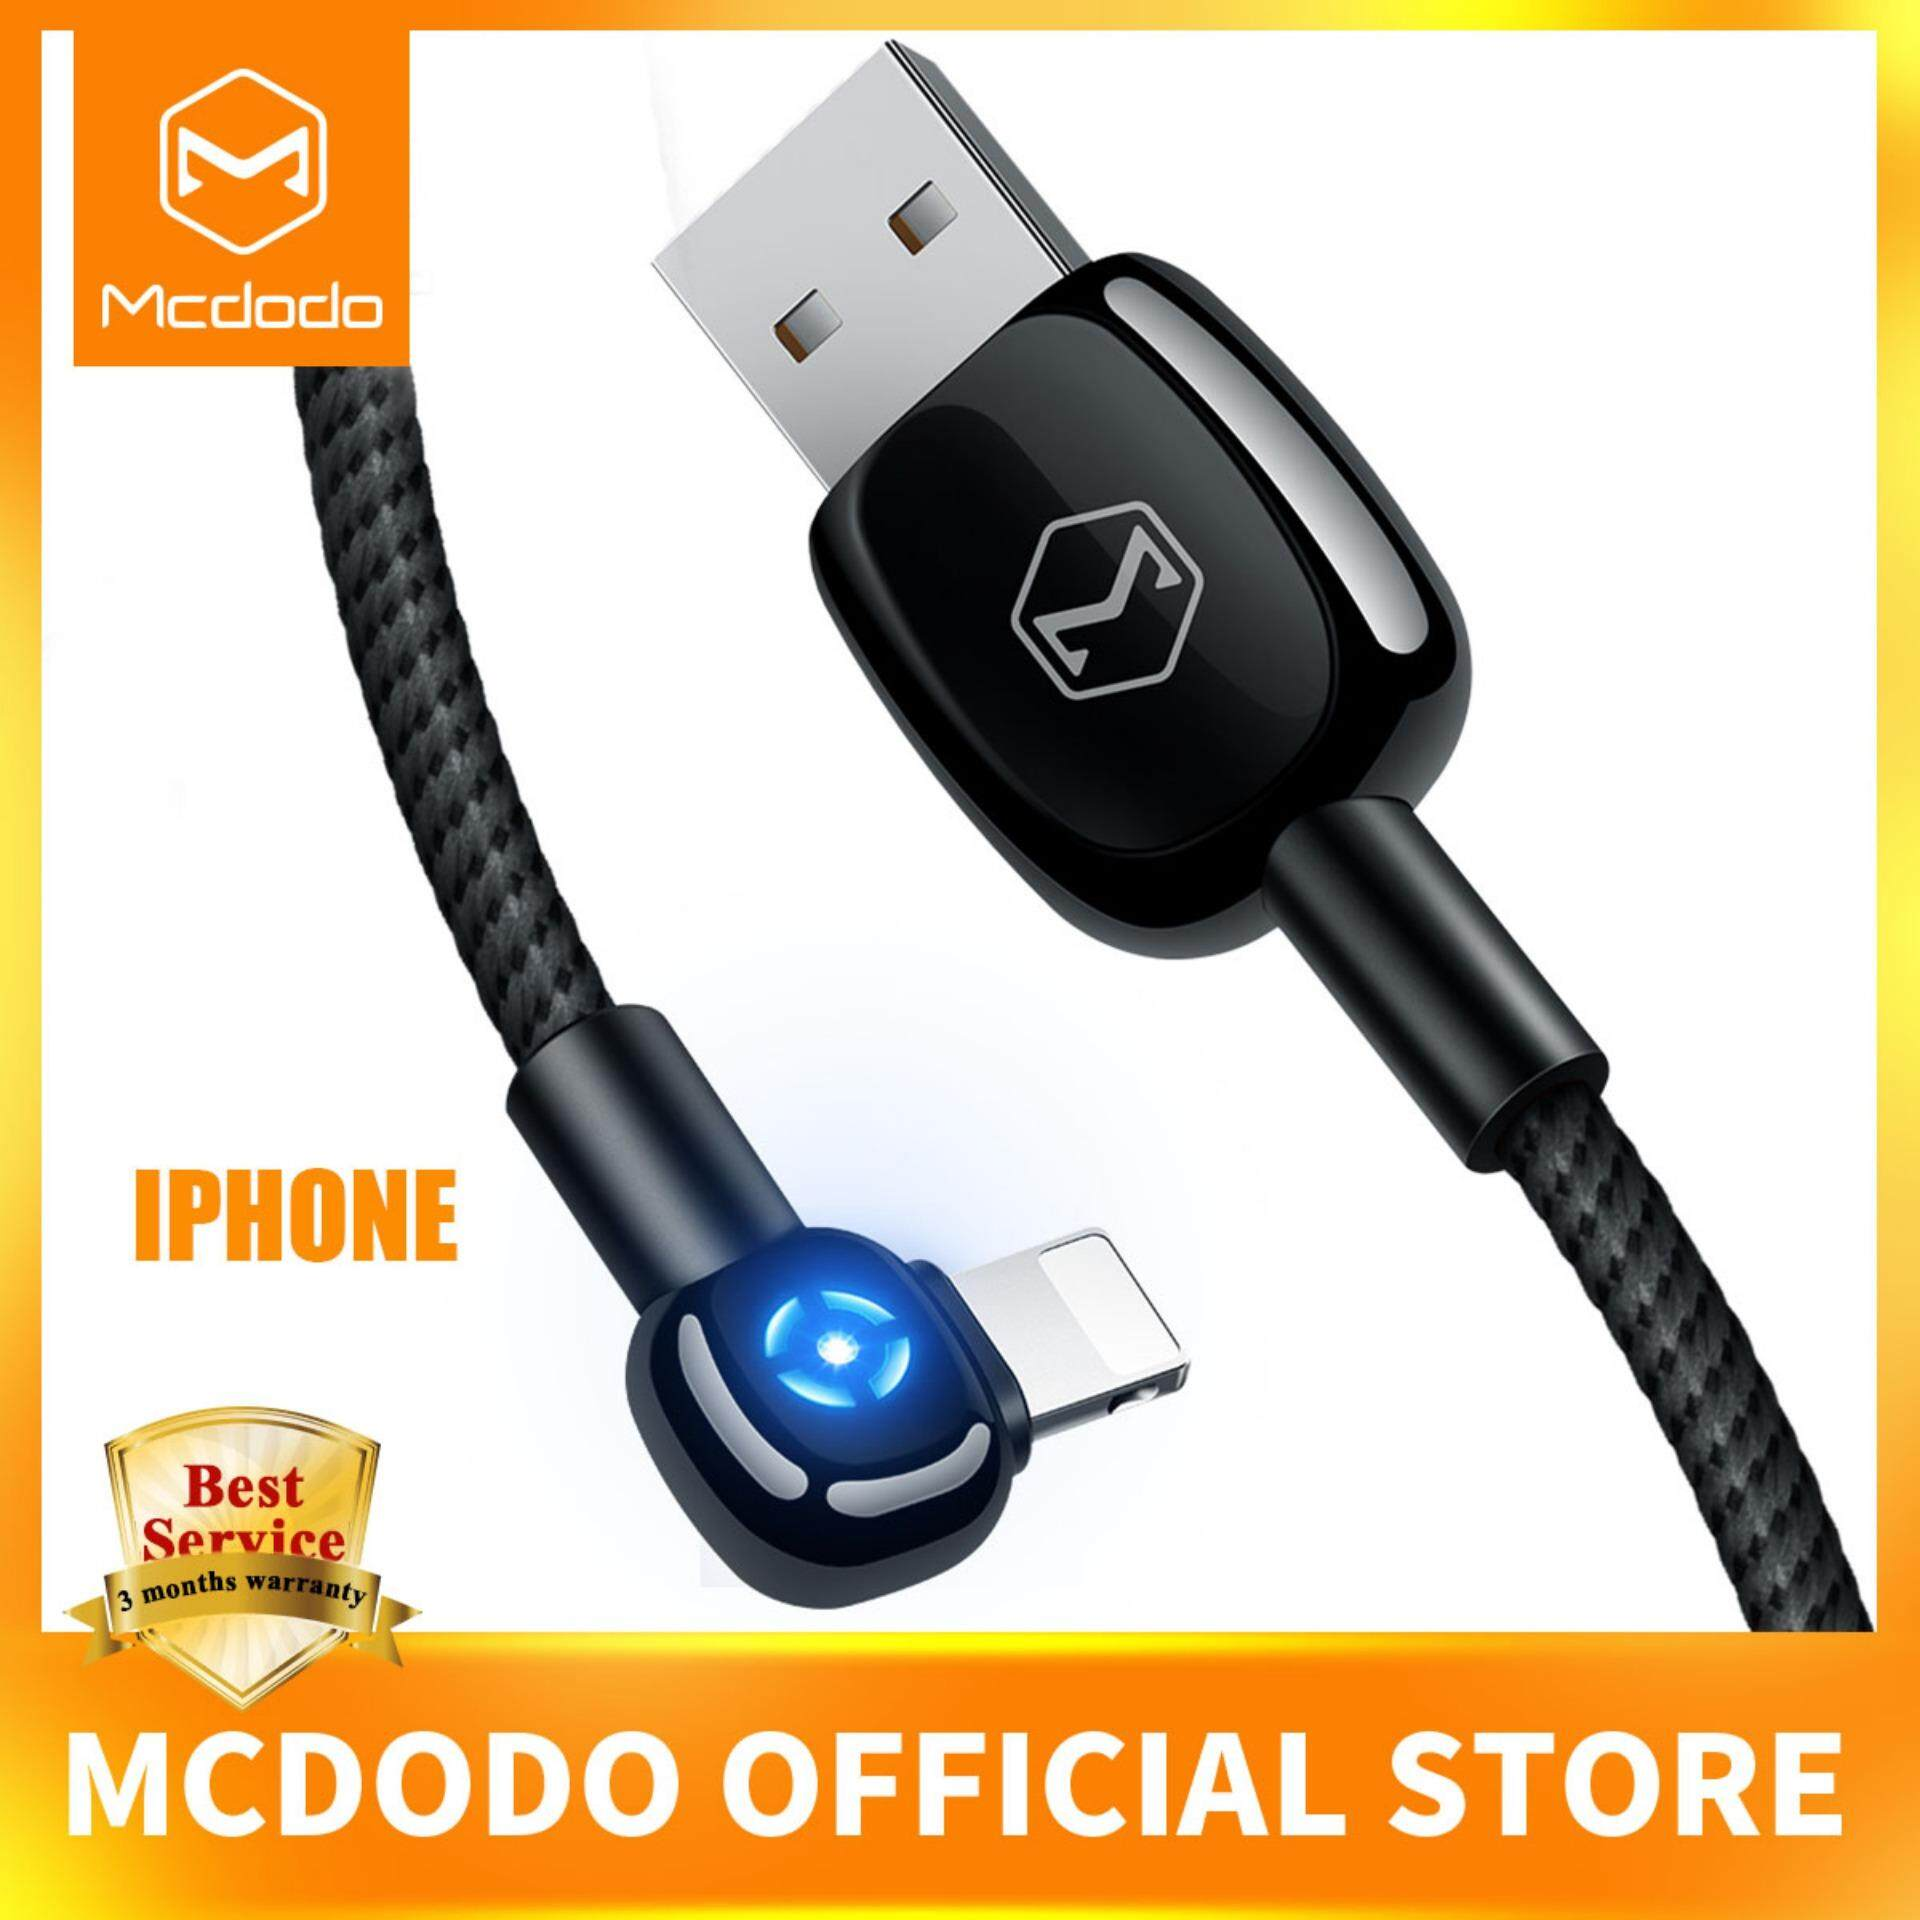 6393ca8ecd7 Mcdodo Auto Disconnect LED Light For iPhone Charger Cable USB Cord Fast  Charging Data Cable For